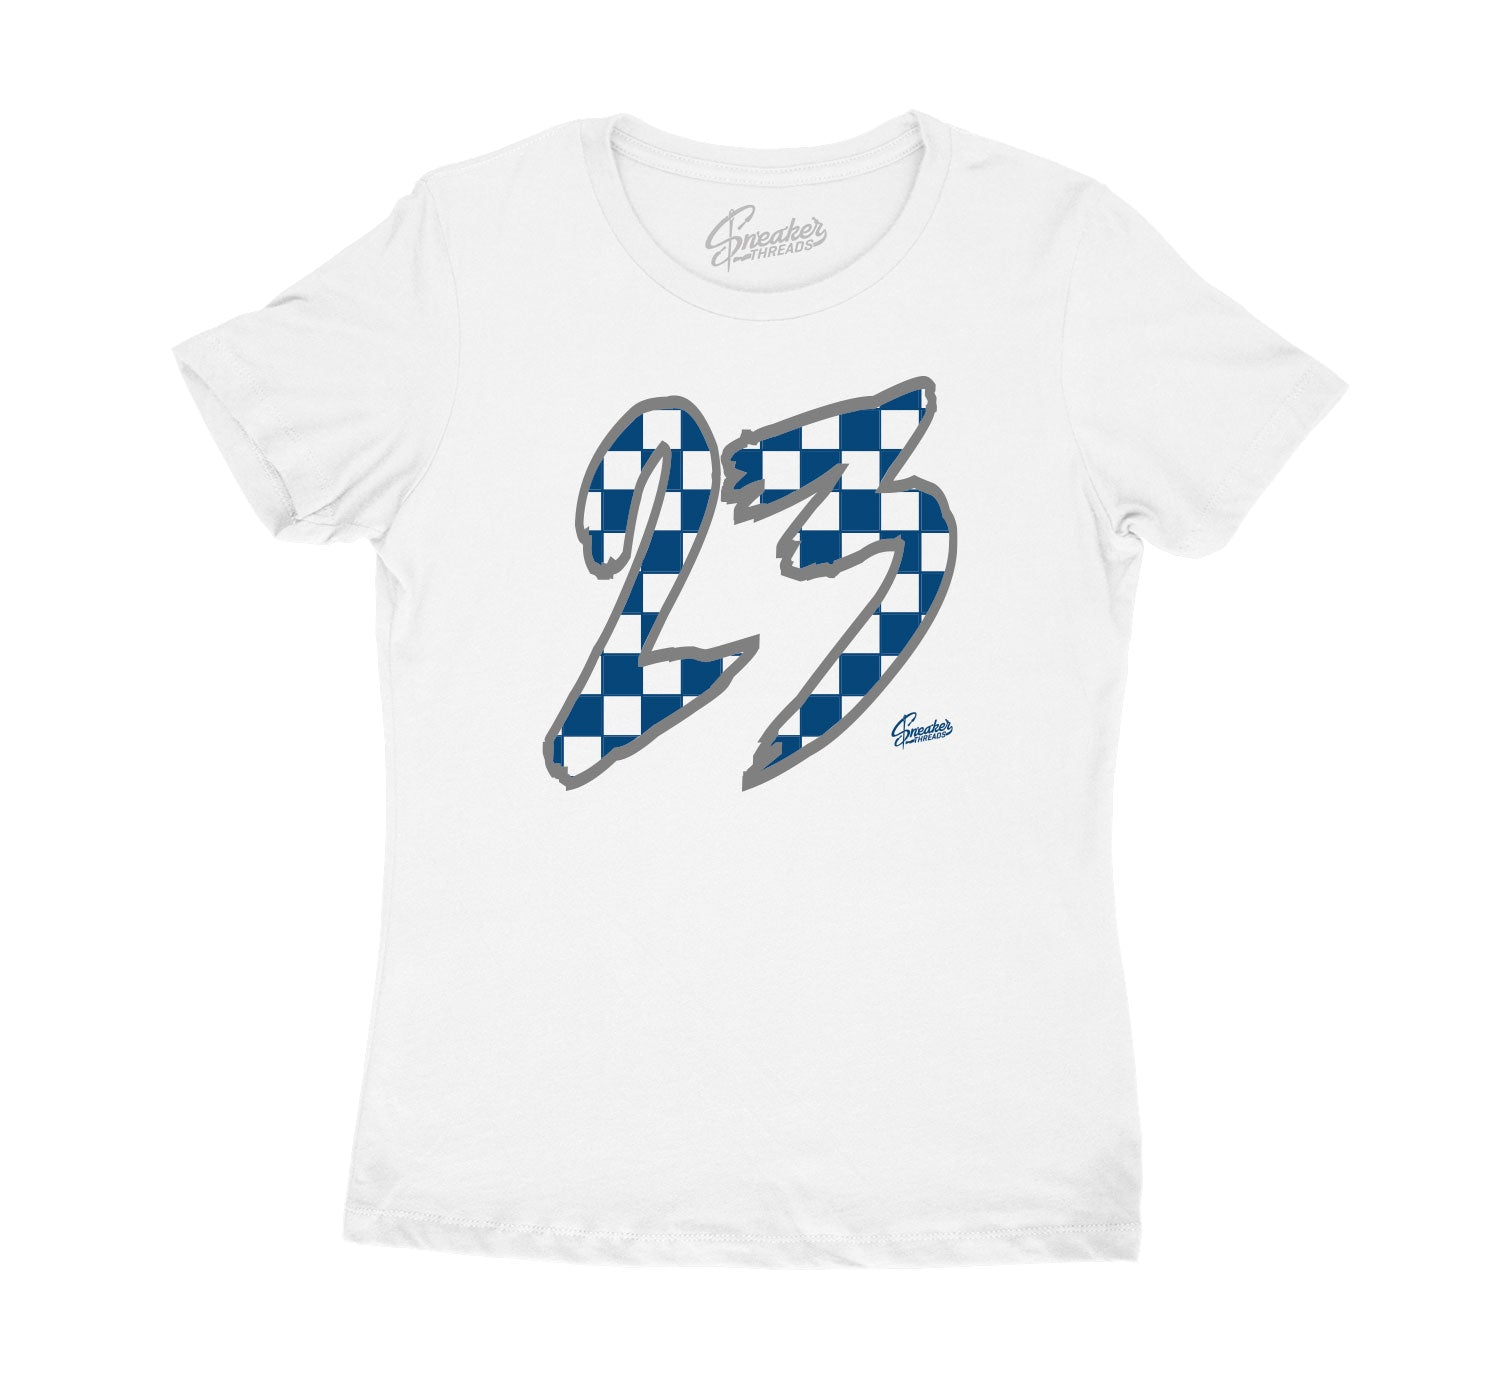 Flint Jordan 13 sneaker collection matches with womens tee collection